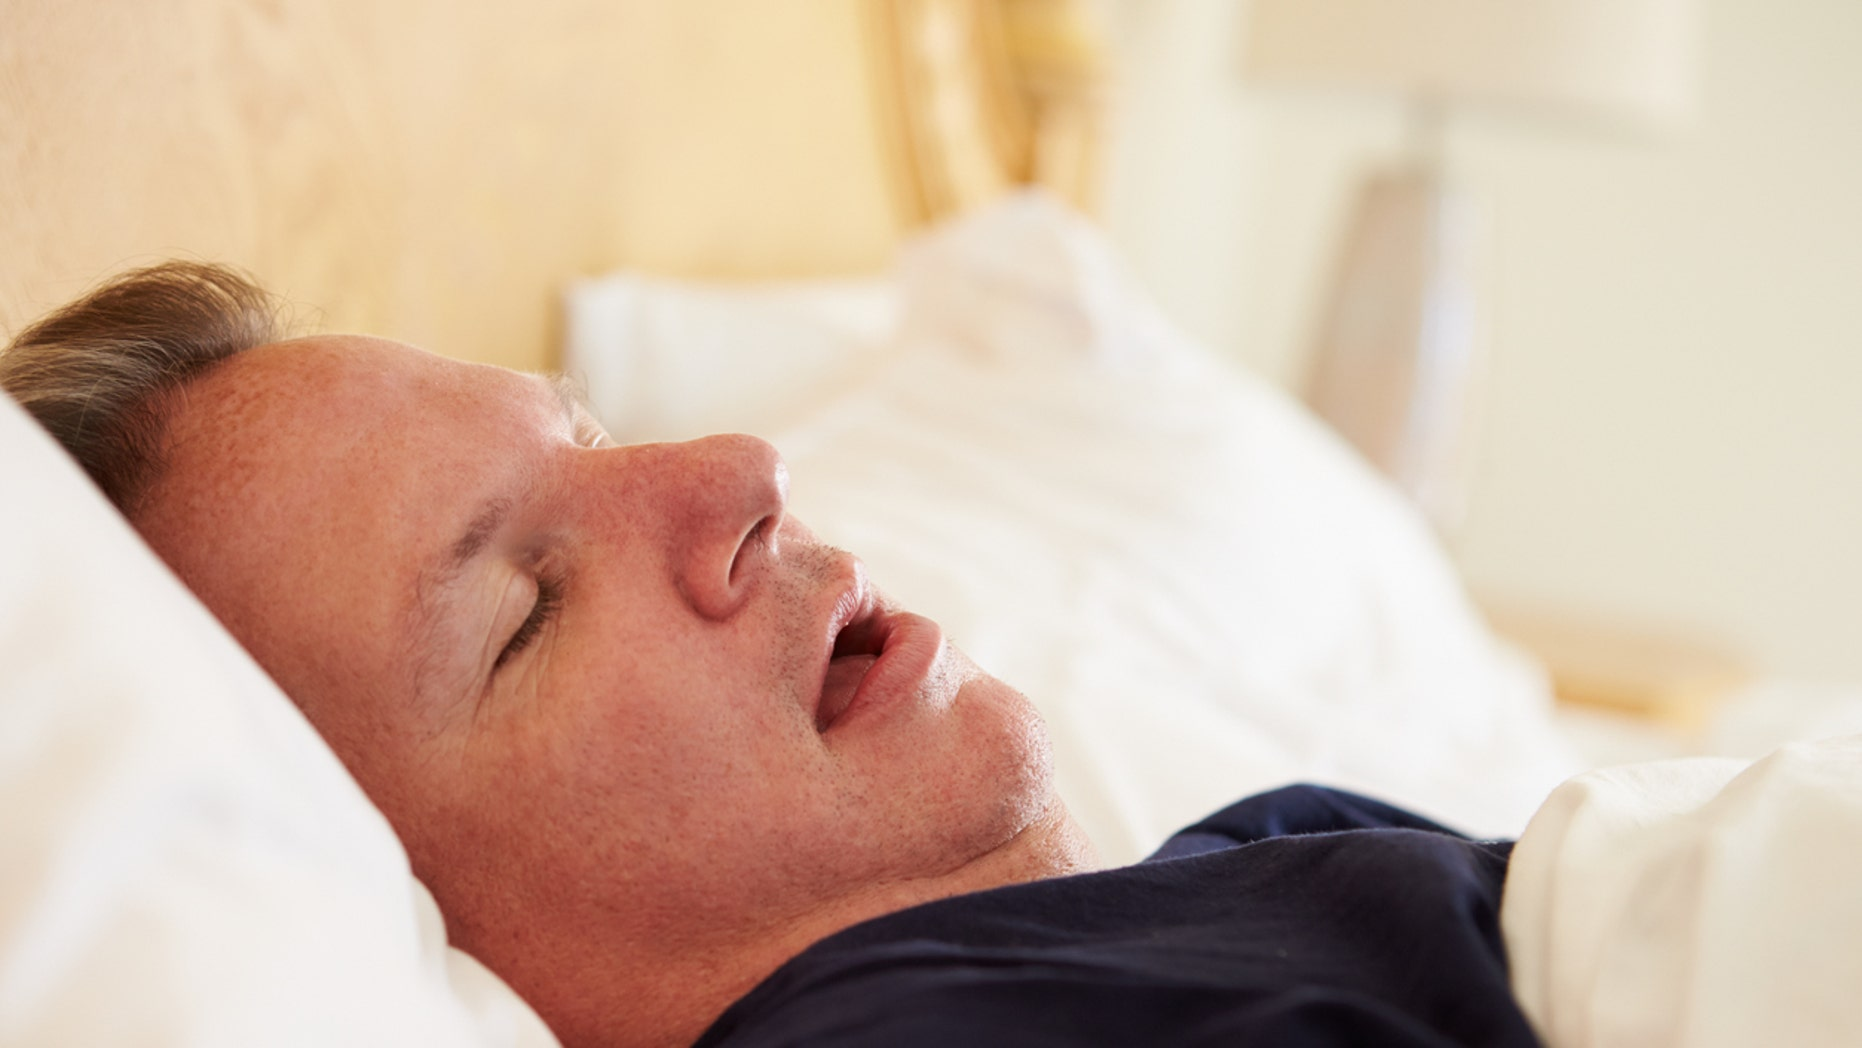 Sleep Apnea May Be Tied to Silent Strokes